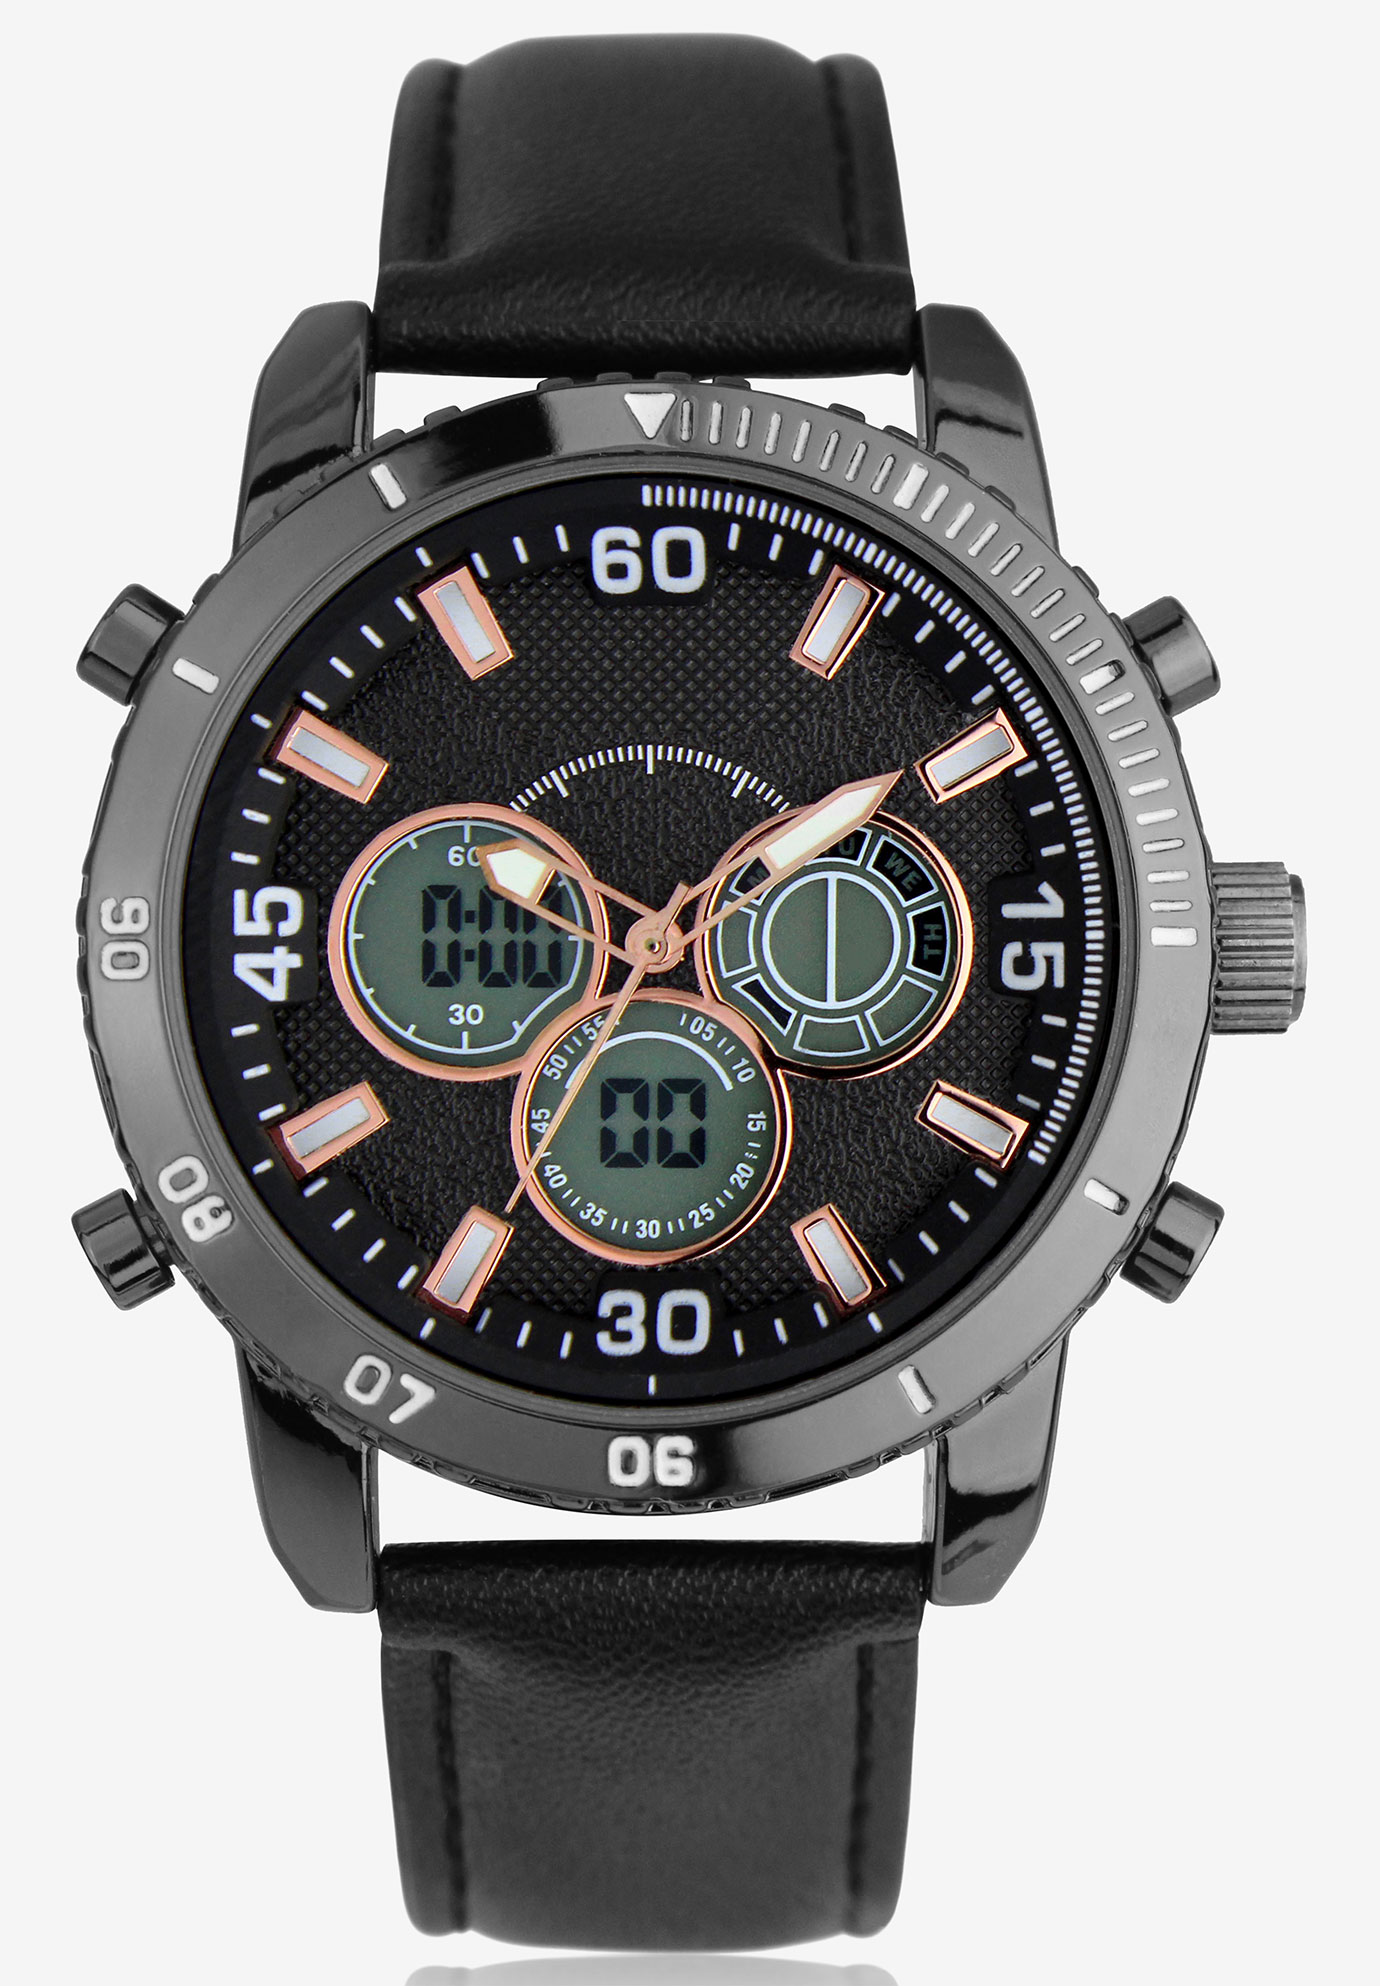 Dual Time/Alarm Chronograph Watch, BLACK